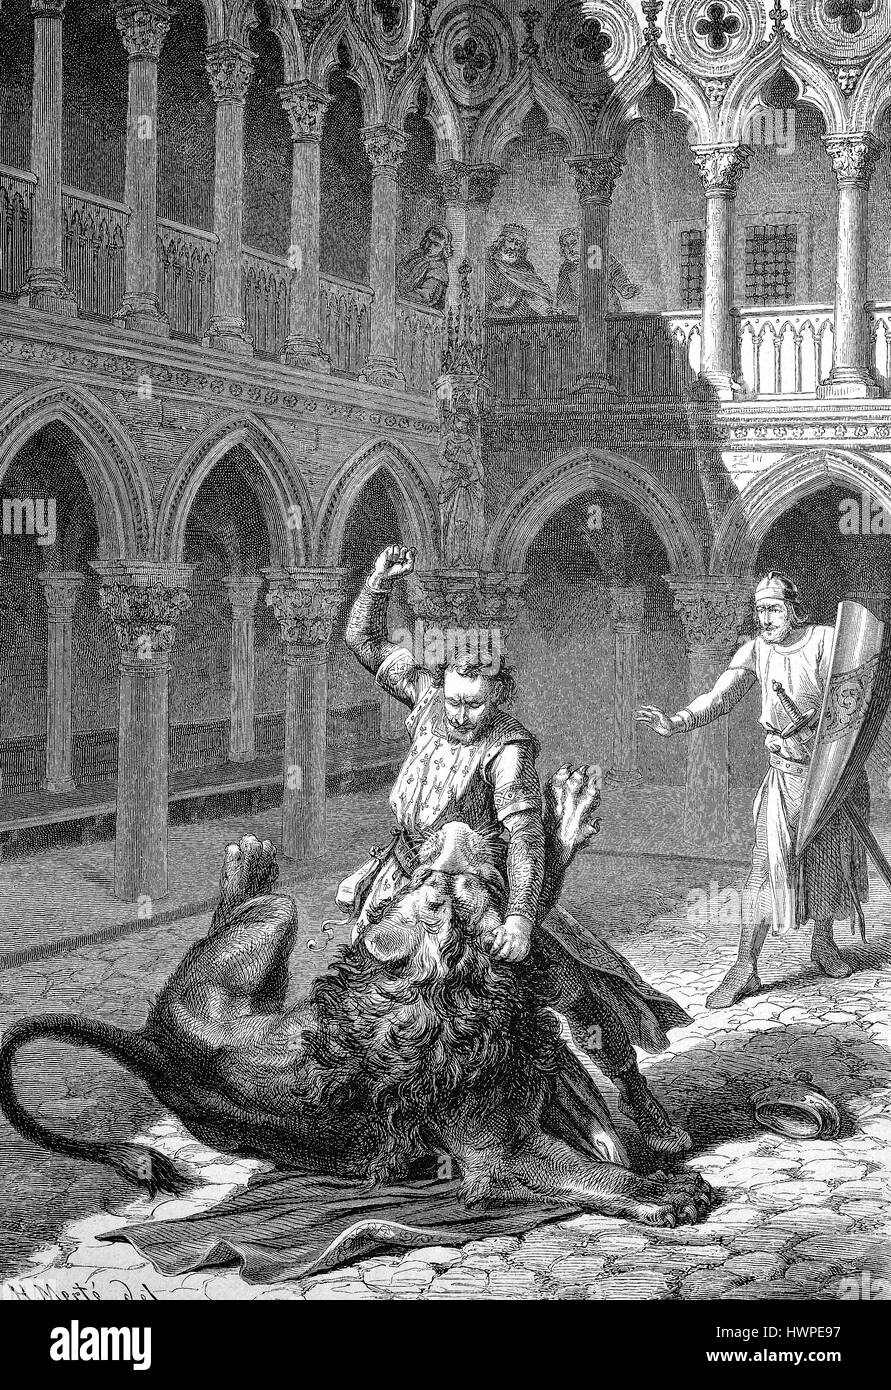 Margrave Wiprecht of Groitzsch, called the elder, 1050-1124 fights in Rome against a lion, Reproduction of an original woodcut from the year 1882, digital improved Stock Photo